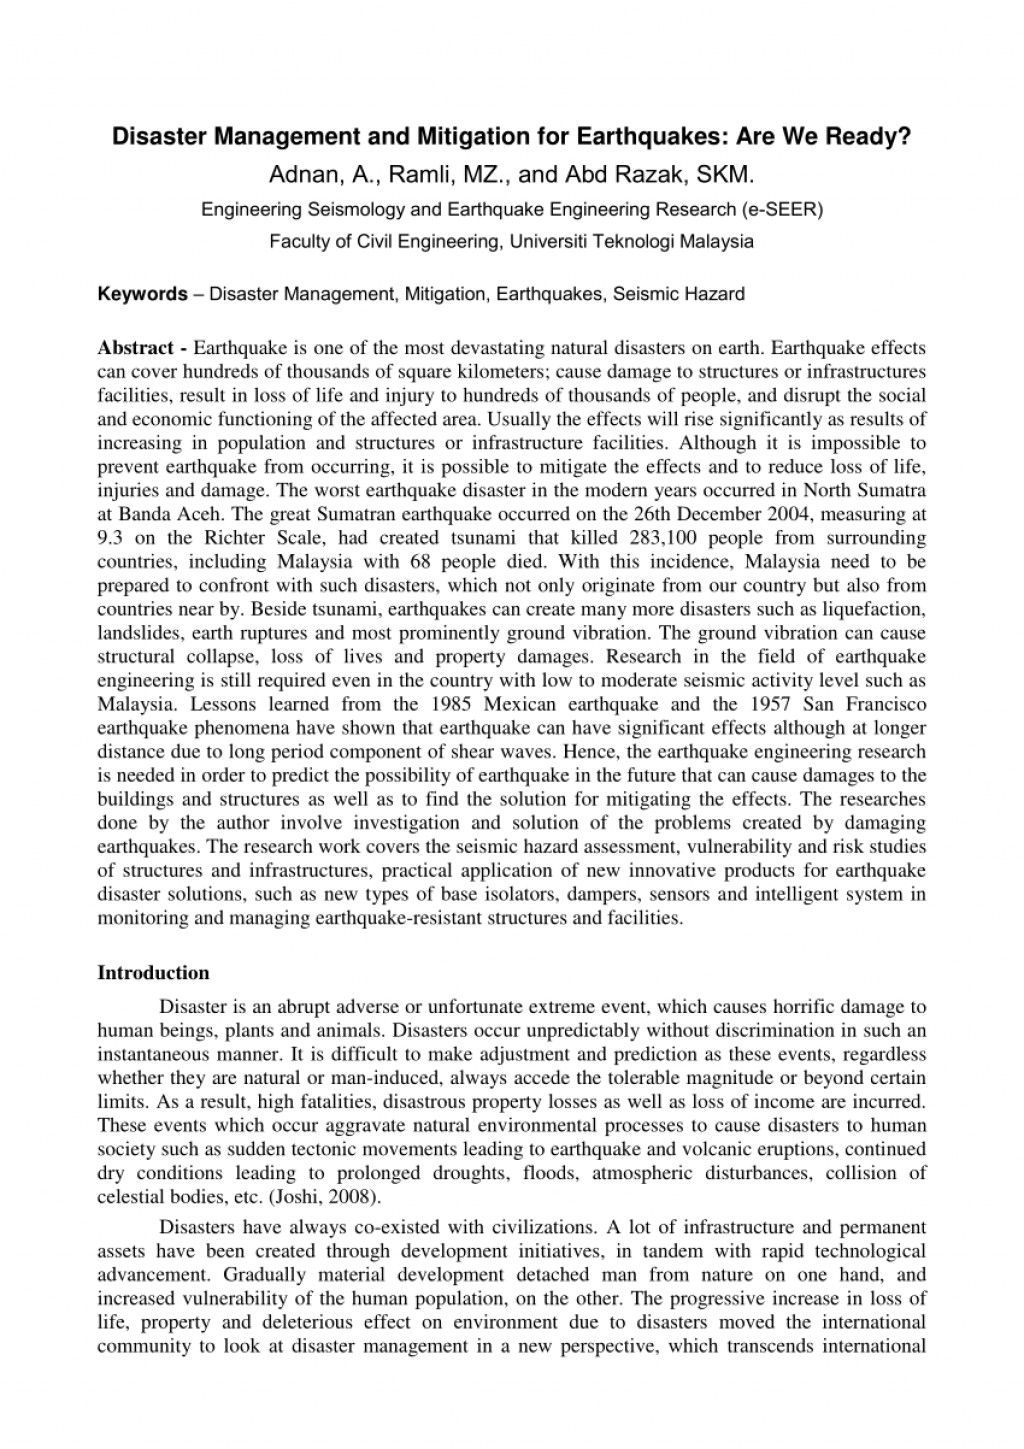 005 Earthquake Research Paper Pdf Philippines Wondrous Large